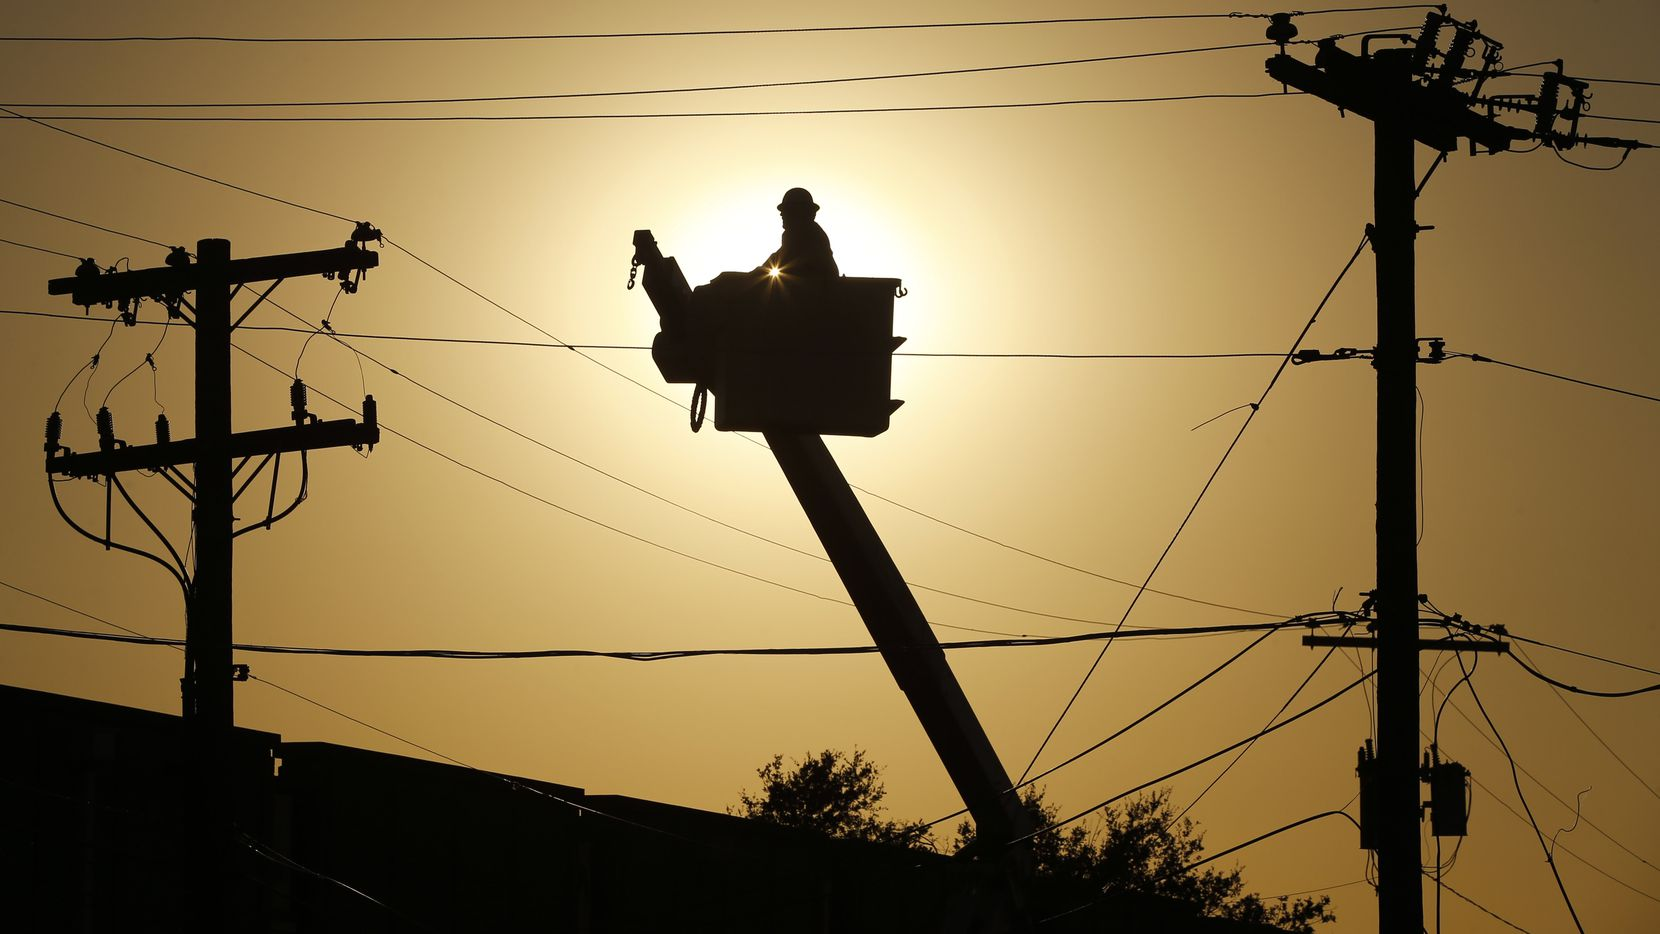 A Primoris lineman helped restore power near the intersection of Marsh and Walnut Hill Lanes in Dallas in October 2019 after tornadoes tore through the area.